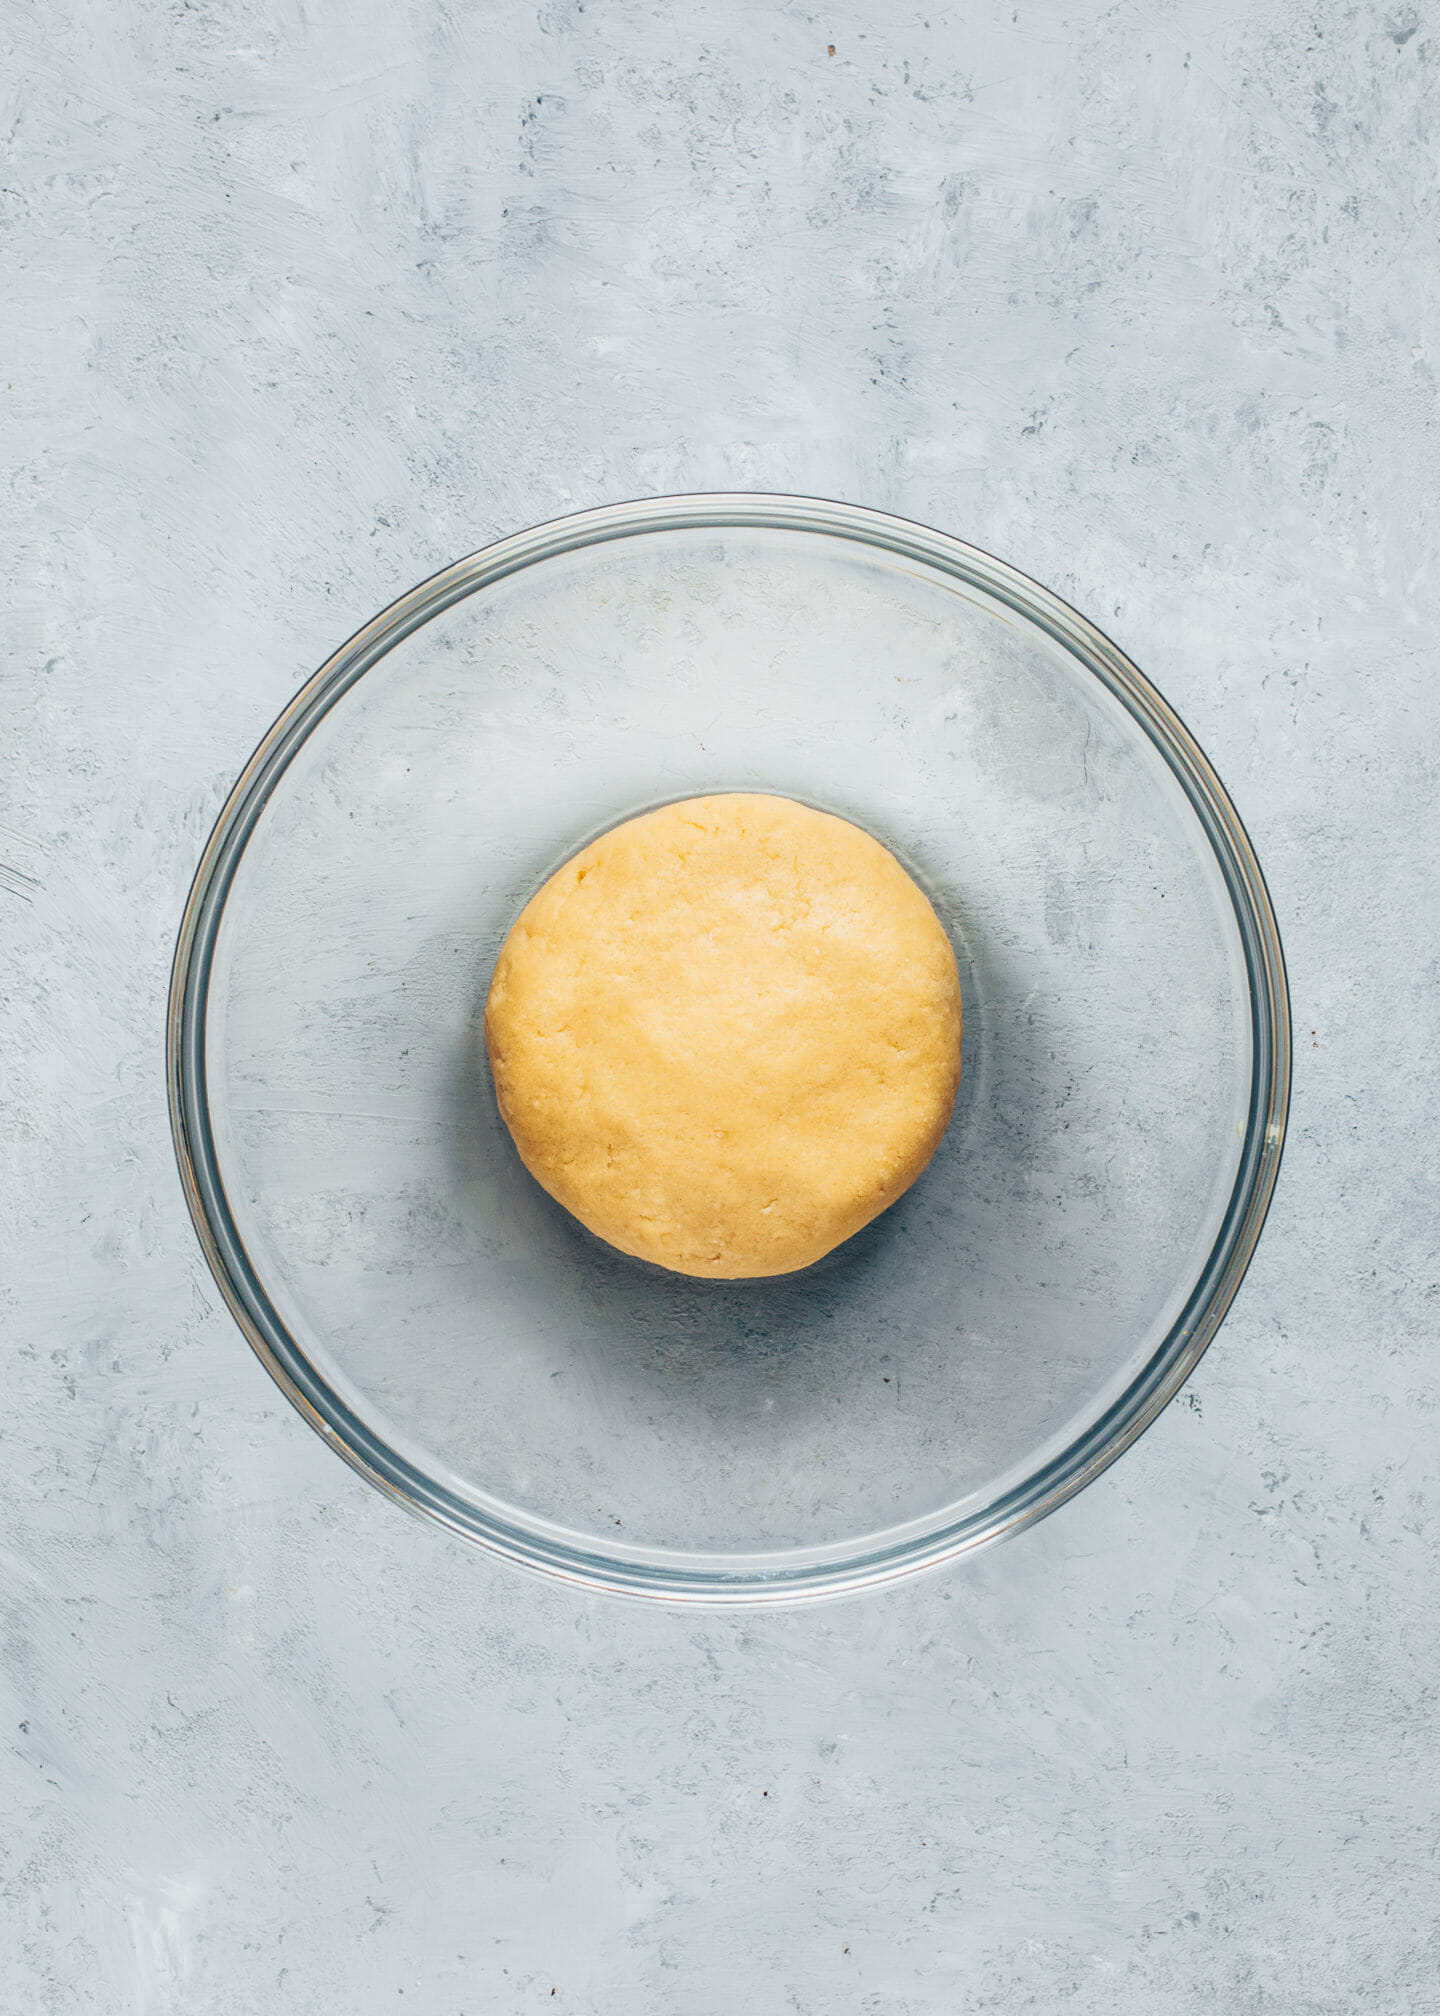 shortcrust pastry dough in a bowl